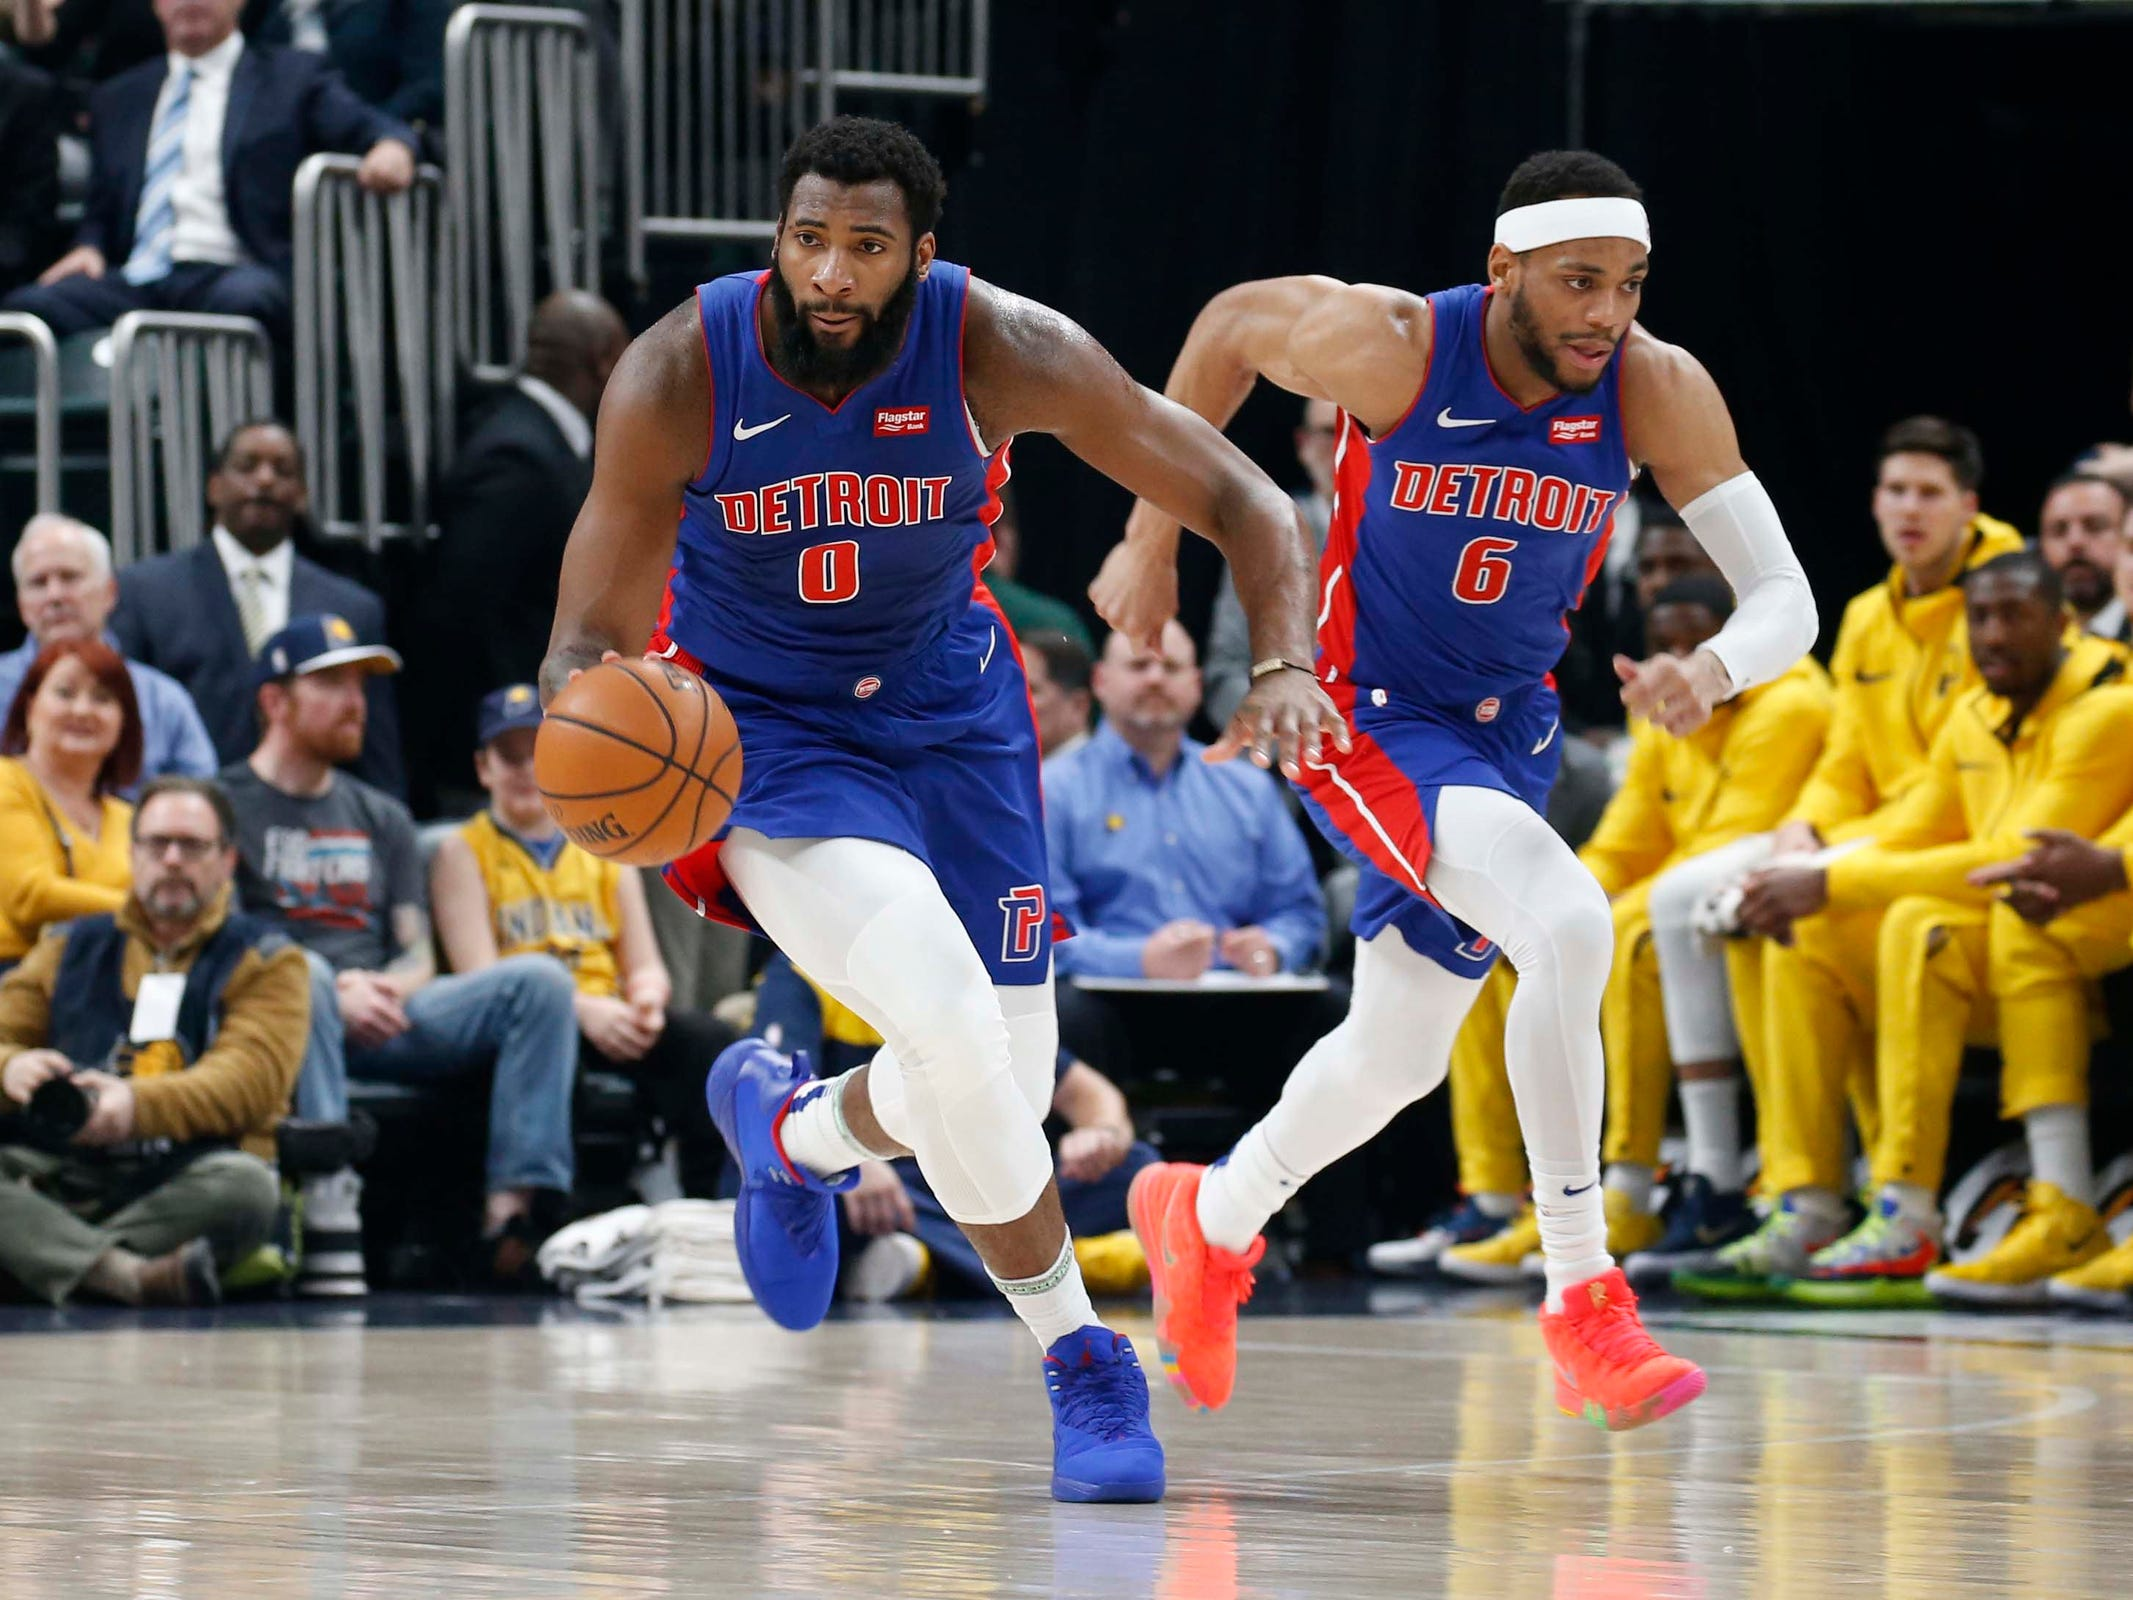 Detroit Pistons center Andre Drummond leads a fast break against the Indiana Pacers during the first quarter at Bankers Life Fieldhouse on April 1, 2019 in Indianapolis.